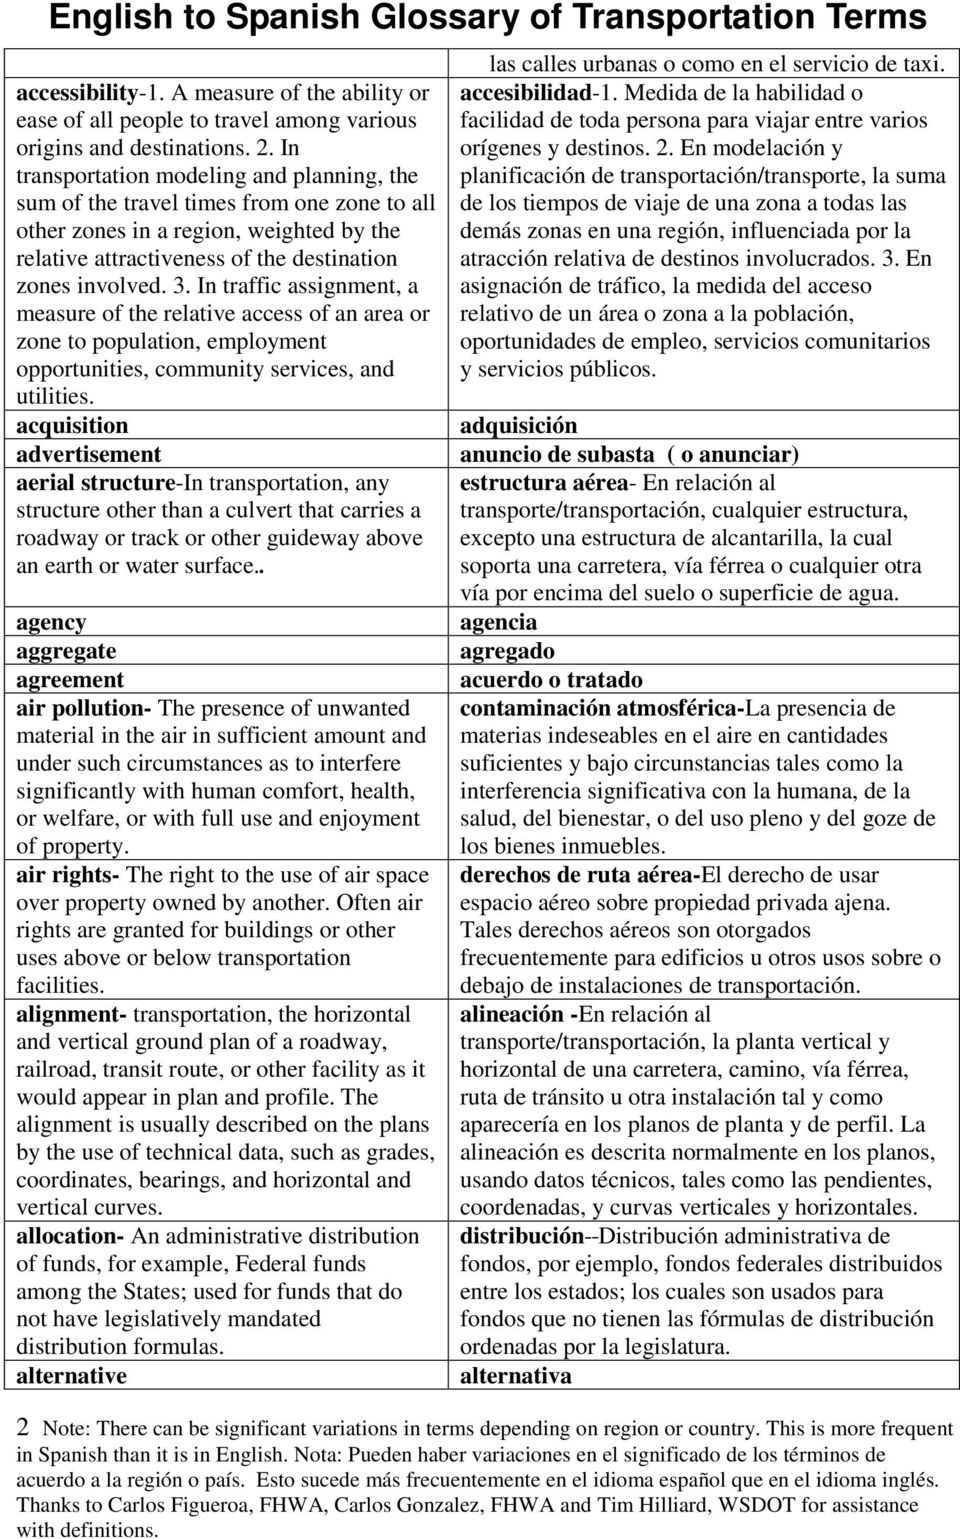 In traffic assignment, a measure of the relative access of an area or zone to population, employment opportunities, community services, and utilities.